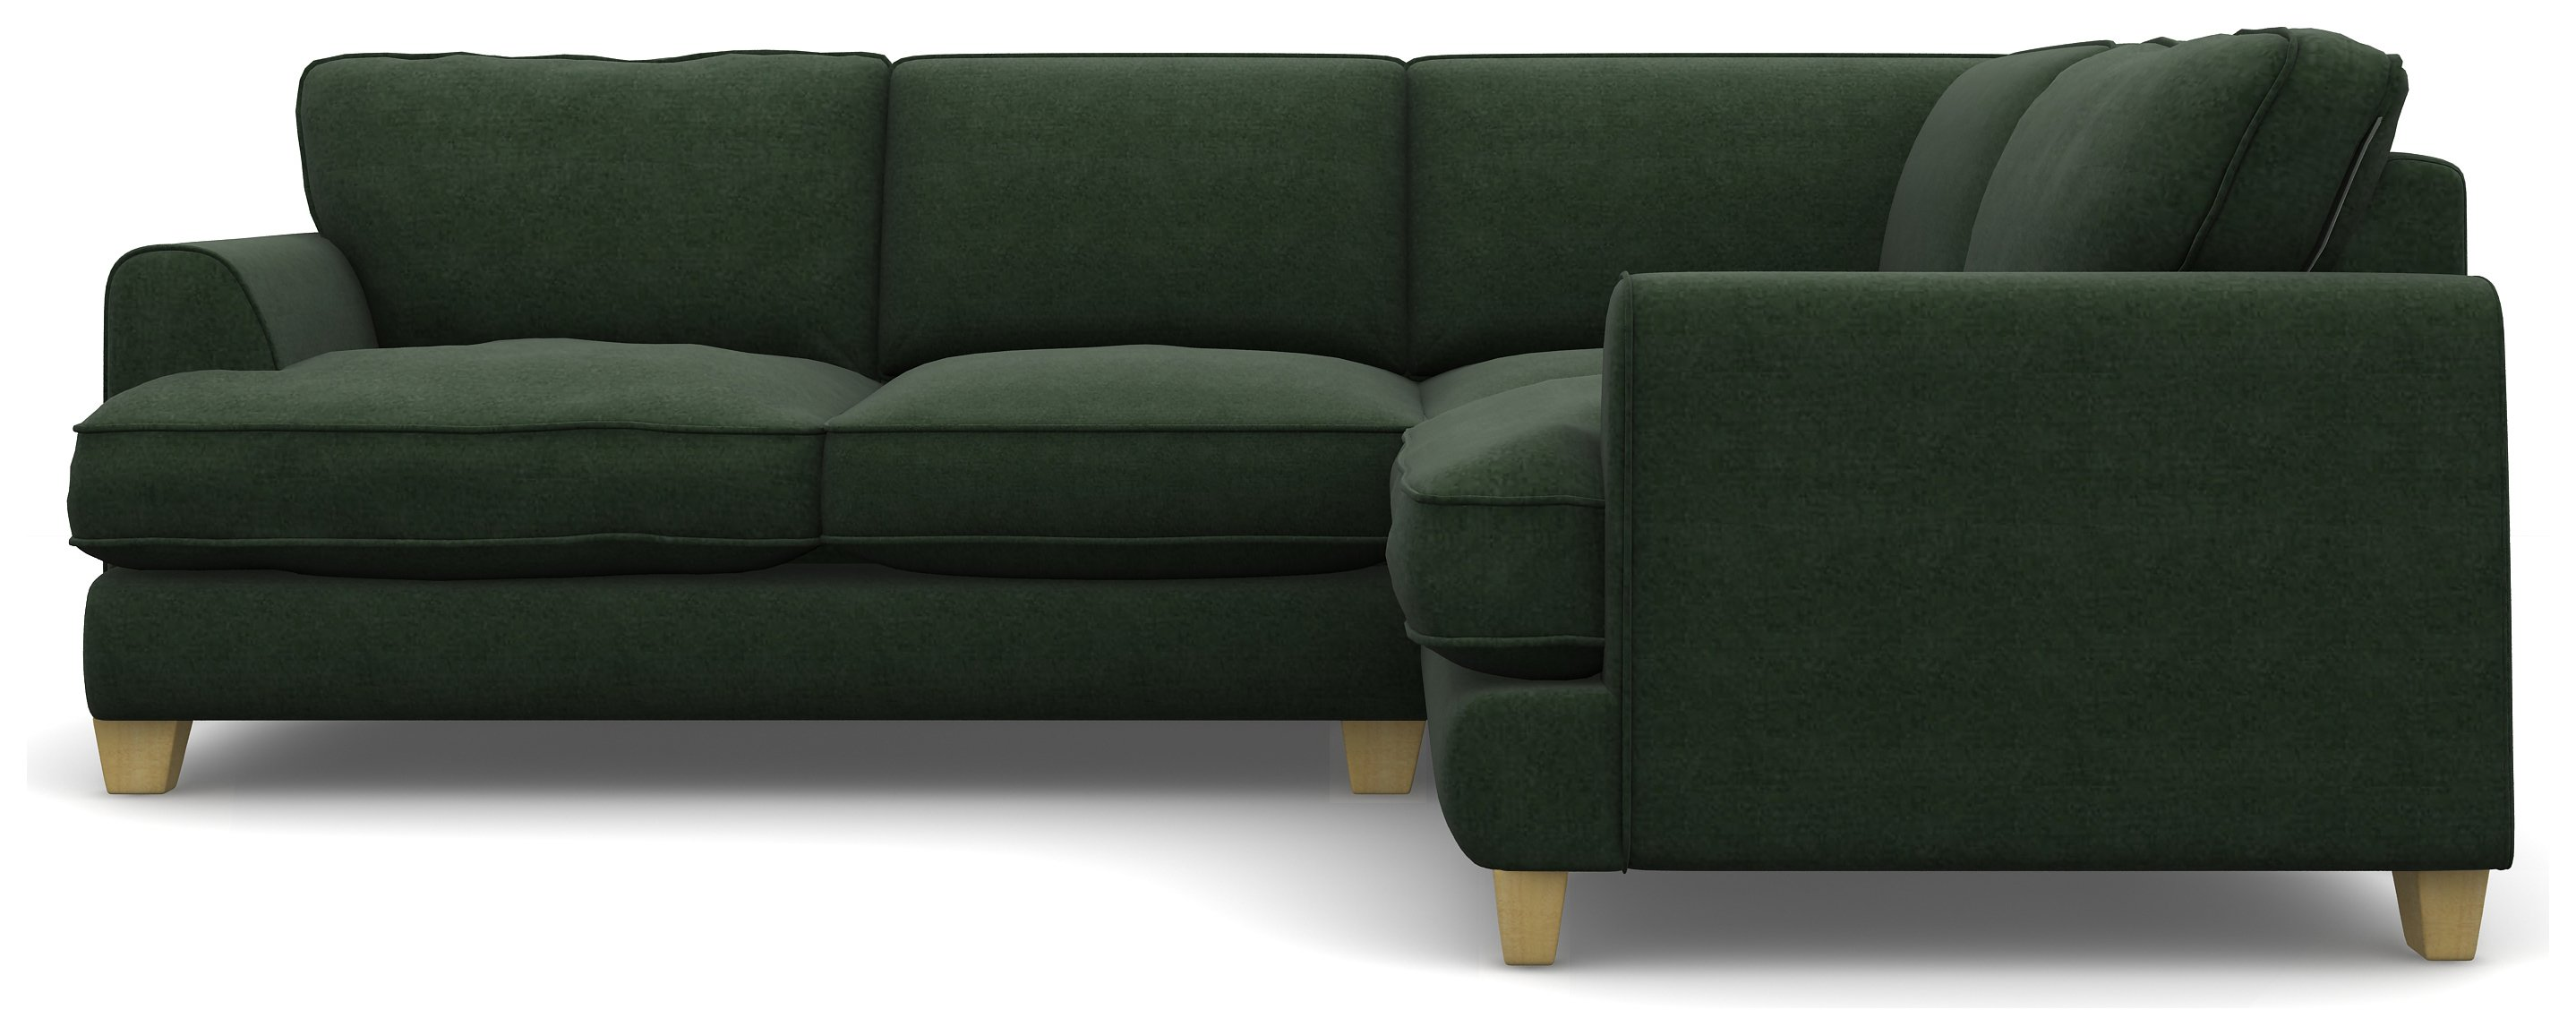 Heart of House Hampstead Right Corner Sofa - Forest Green